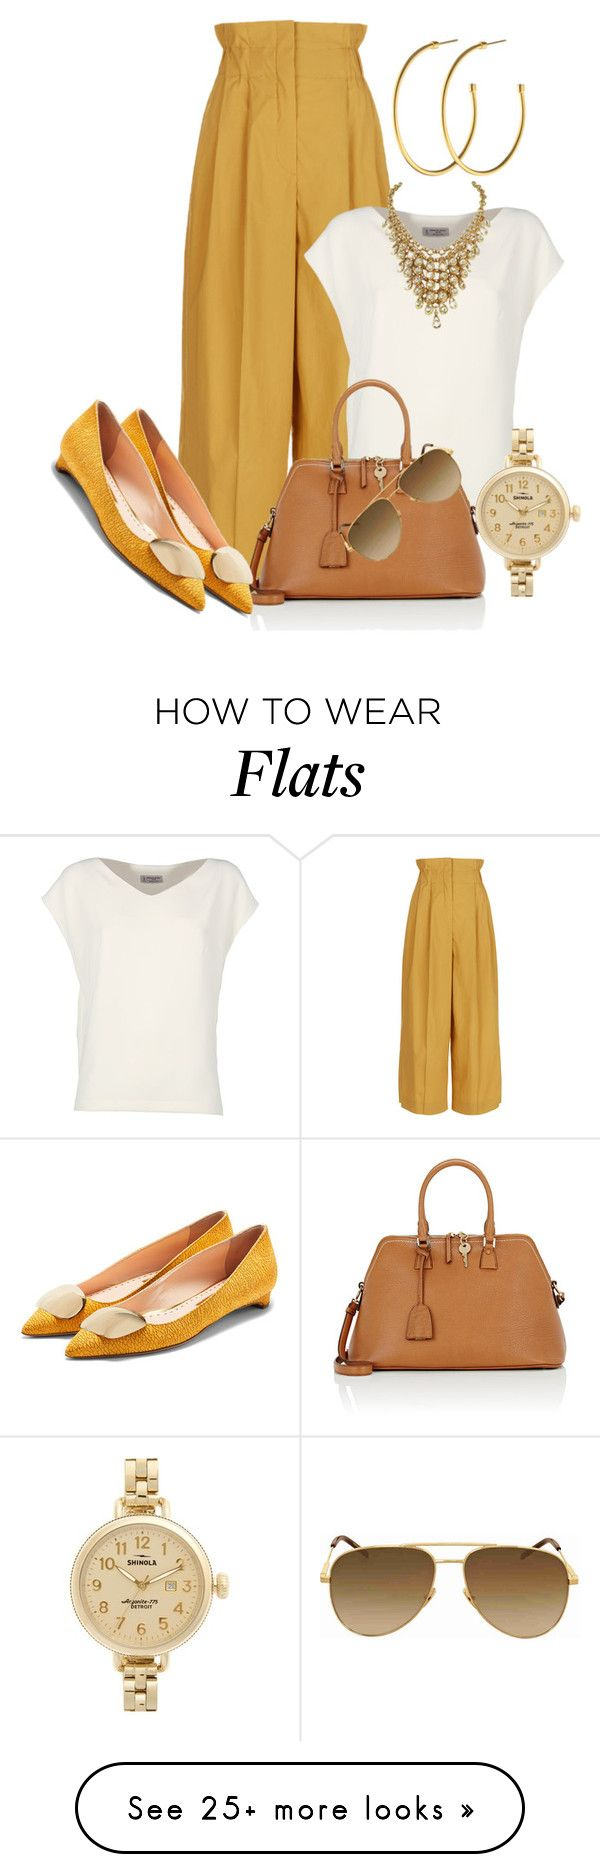 """Work Wear - Casual Friday"" by sonyastyle on Polyvore featuring Sonia Rykiel, Alberto Biani, Maison Margiela, Shinola, Dyrberg/Kern, Yves Saint Laurent and Rupert Sanderson"